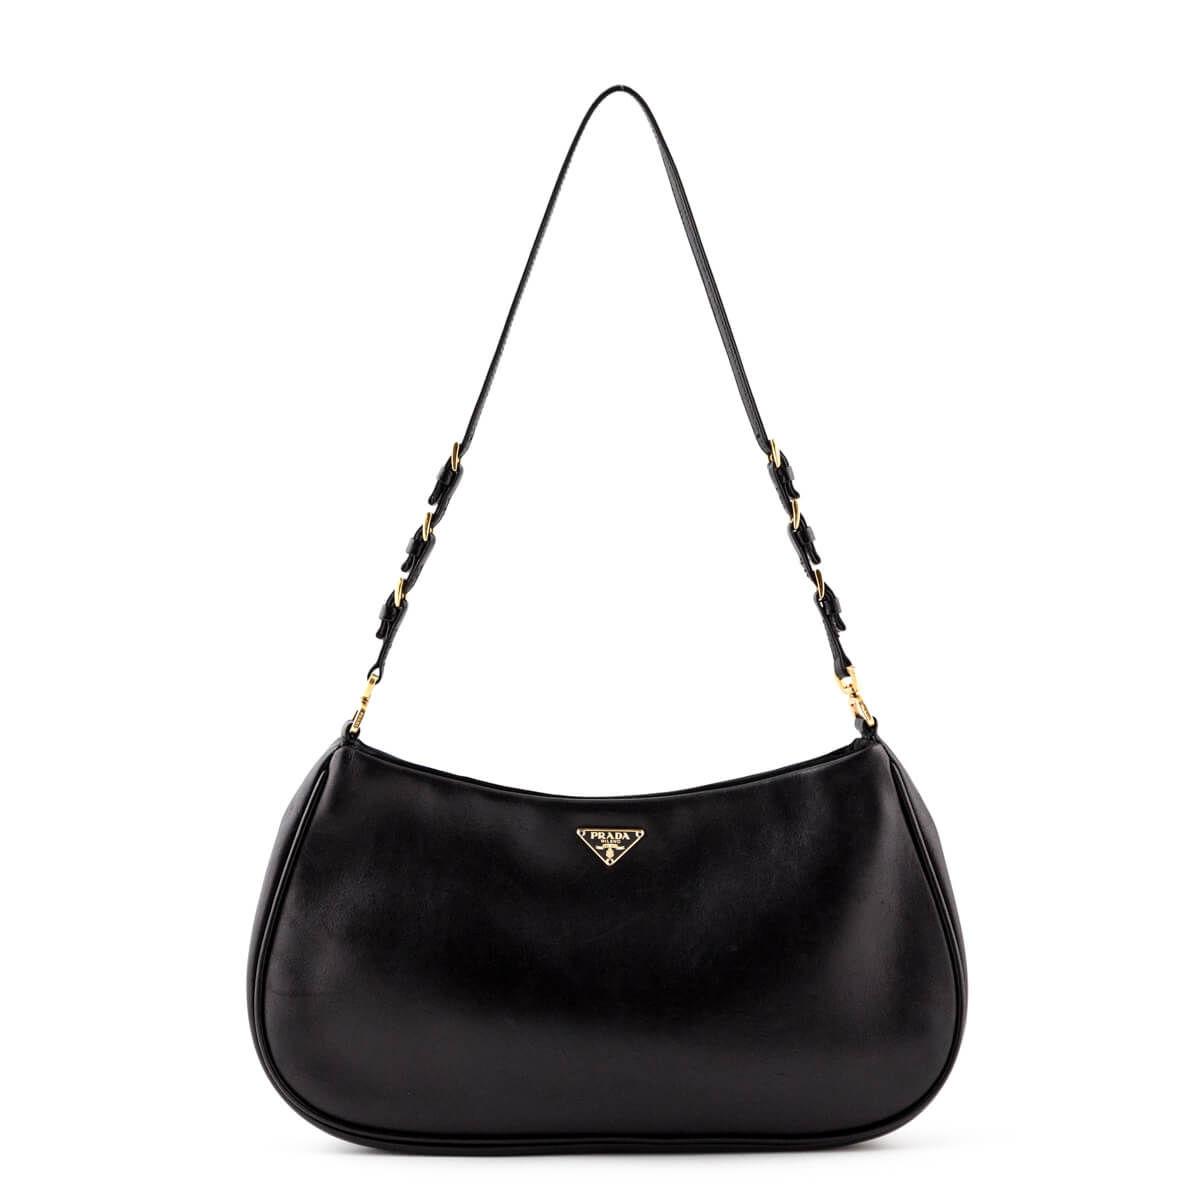 70d31ab76509 Prada Black Vitello Daino Small Shoulder bag - LOVE that BAG - Preowned Authentic  Designer Handbags ...